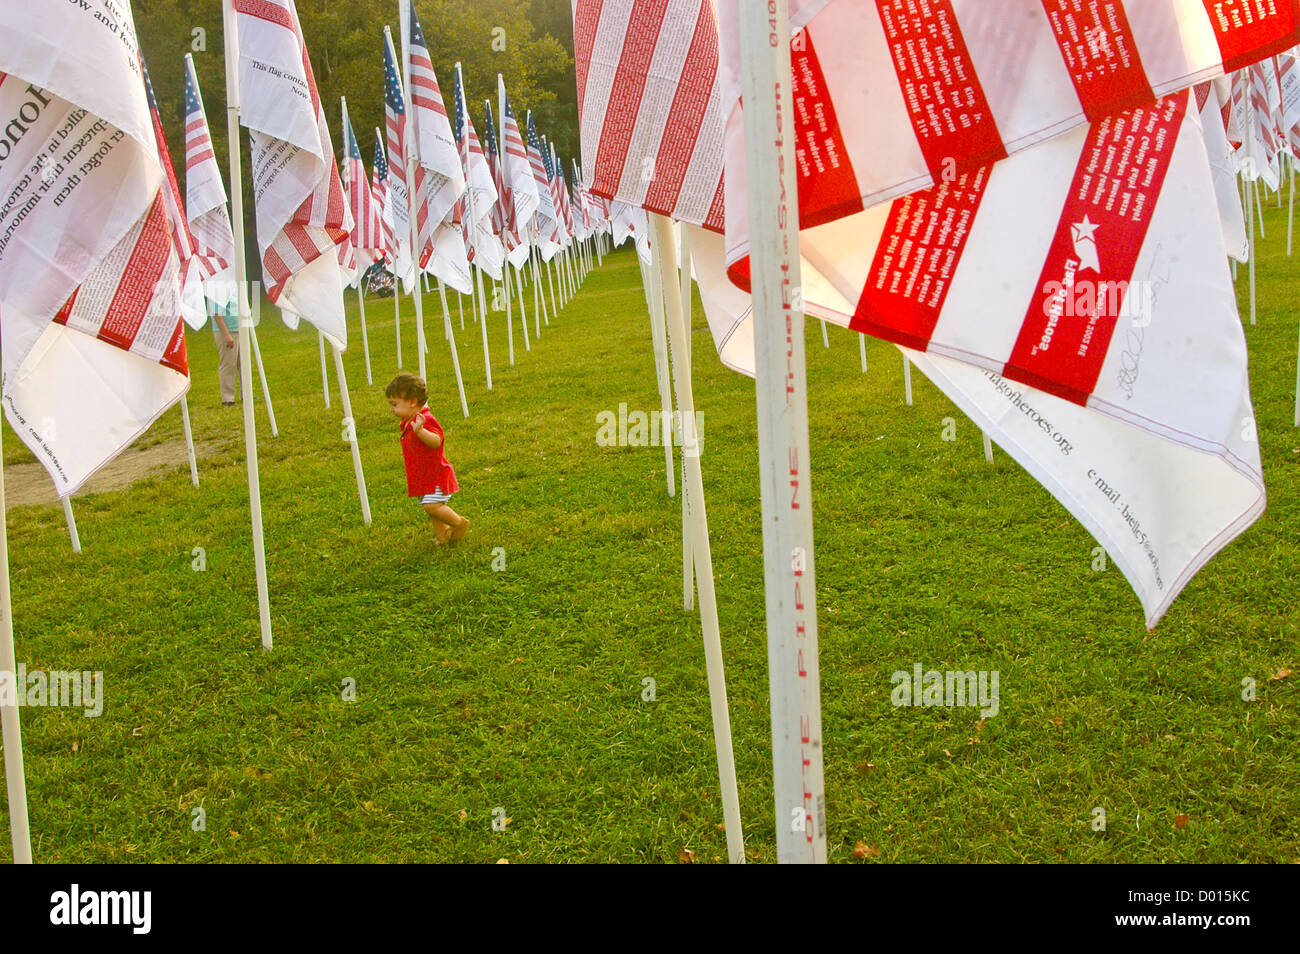 Flags of Heroes Flags of Honor tribute to victims of September 11th ©Stacy Walsh Rosenstock - Stock Image